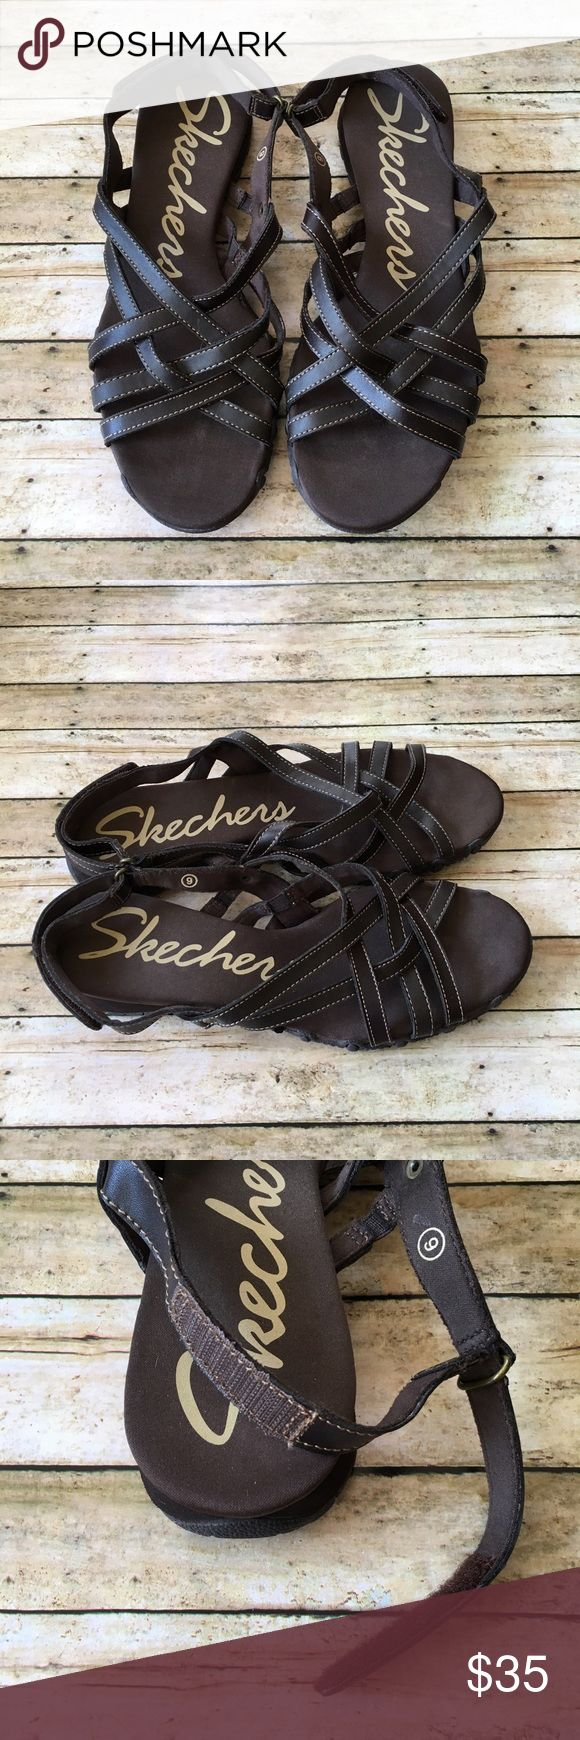 Skechers Bikers 'Dream Weaver' Fisherman Sandals Skechers Bikers 'Dream Weaver' Fisherman Sandals. SZ 9. Dark Brown leather. Adjustable heel strap. Rubber sole. Excellent Used Condition. Skechers Shoes Sandals